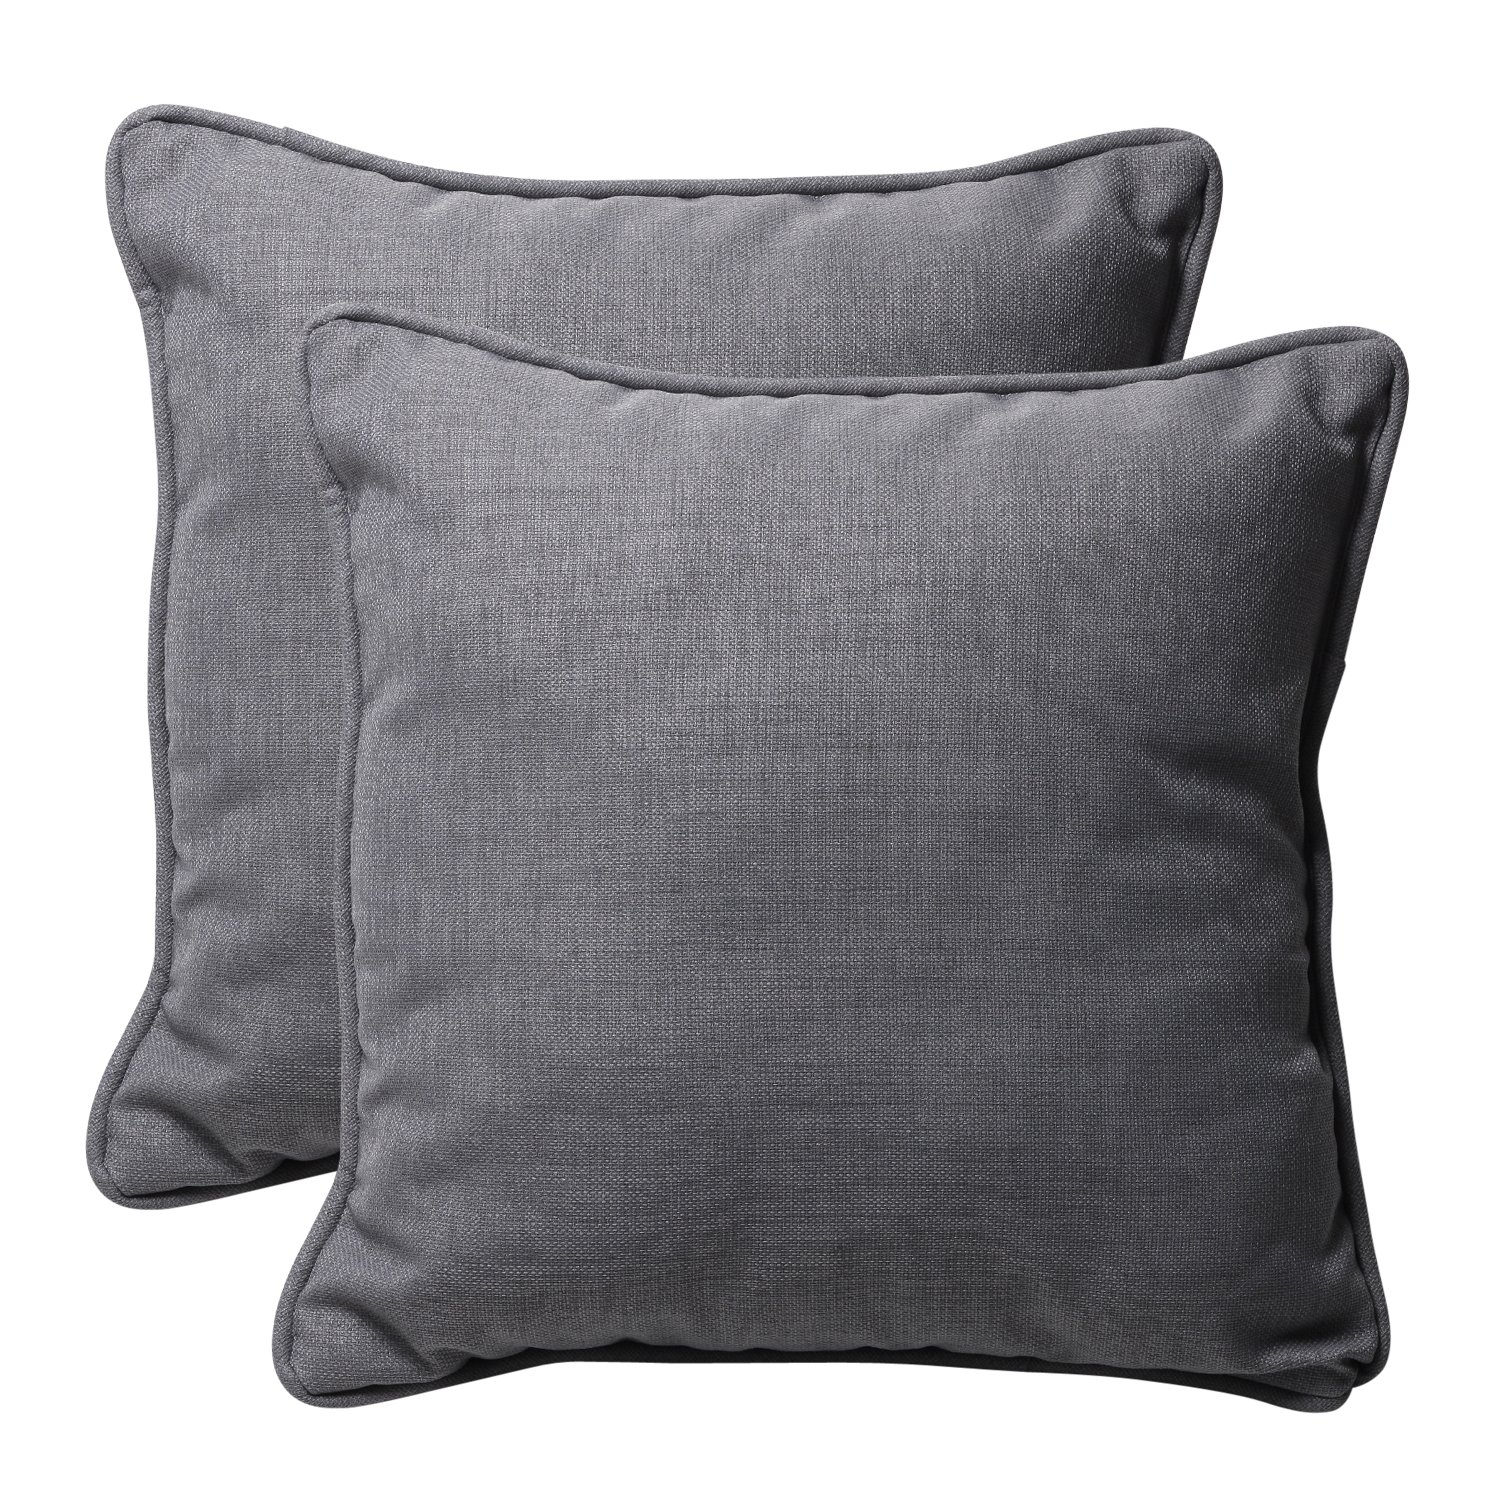 Amazon.com: Pillow Perfect Decorative Gray Textured Solid Square ...